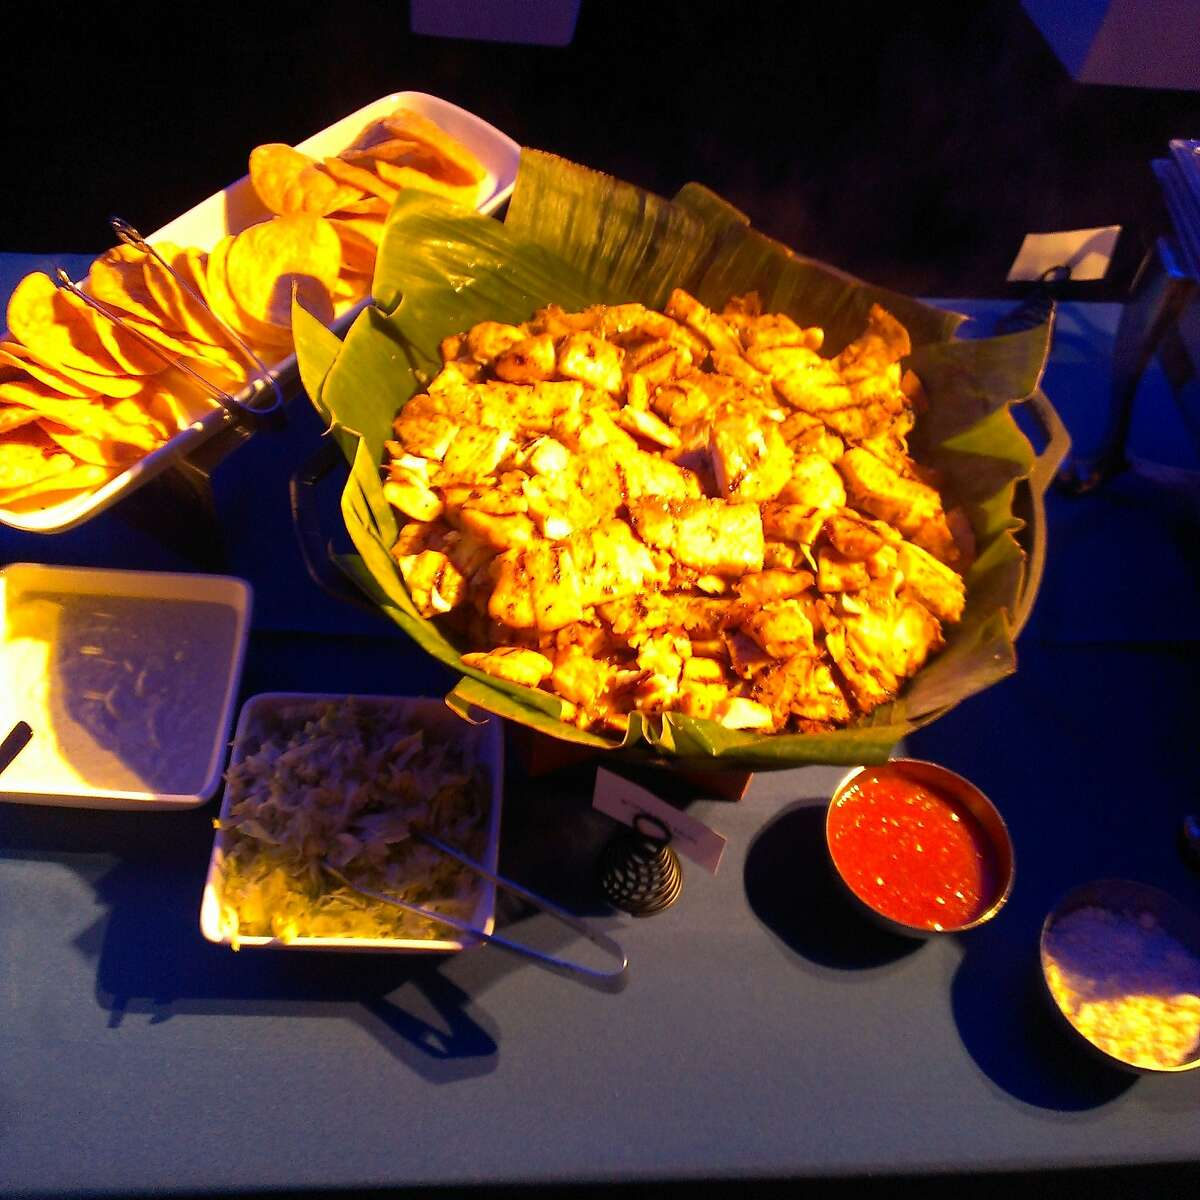 The snack table during a baseball-themed holiday party held by Facebook at AT&T Park in San Francisco, California.